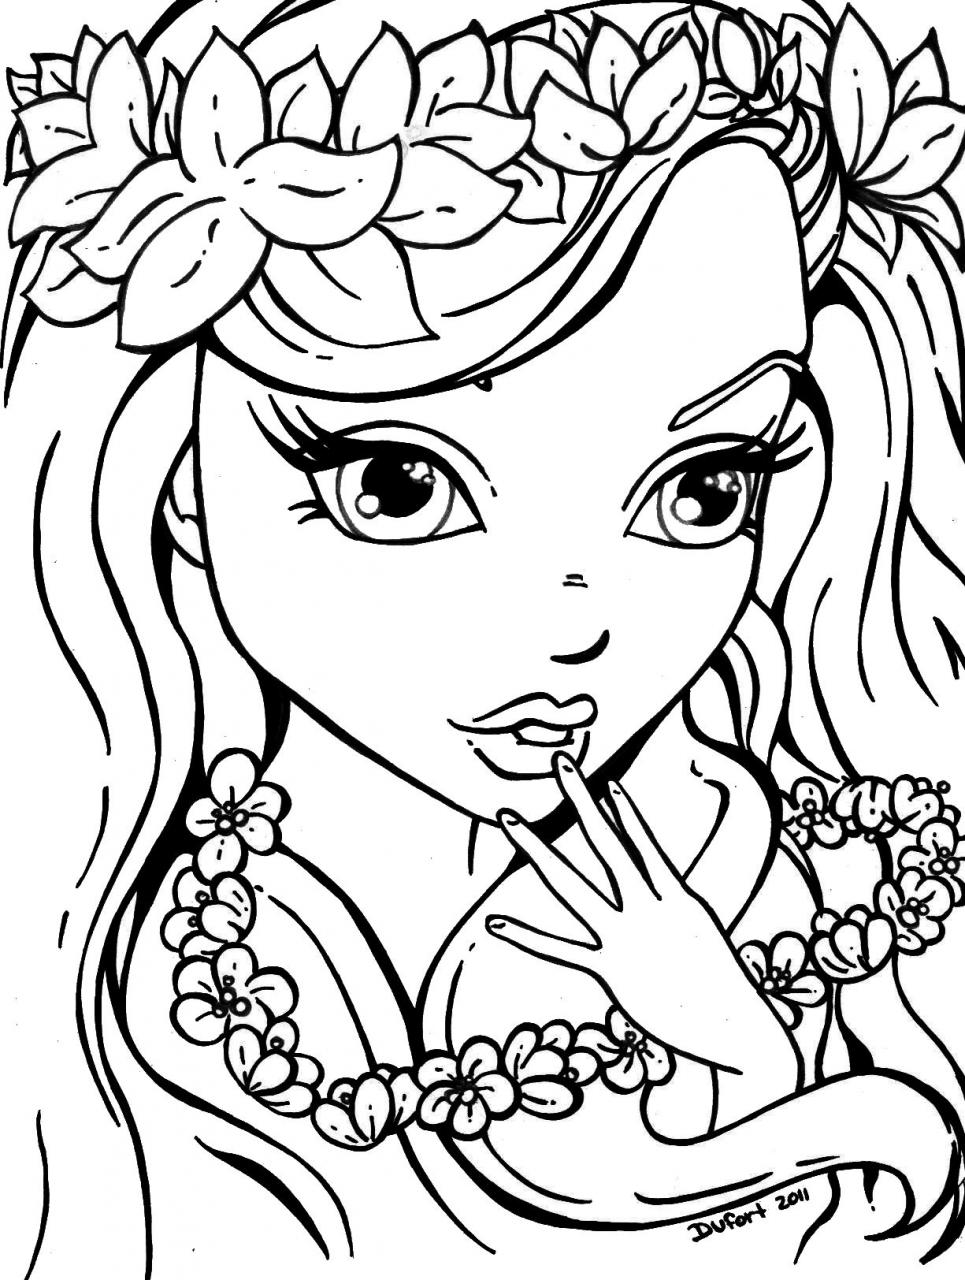 kids printable coloring pages free fish coloring pages for kids pages coloring printable kids